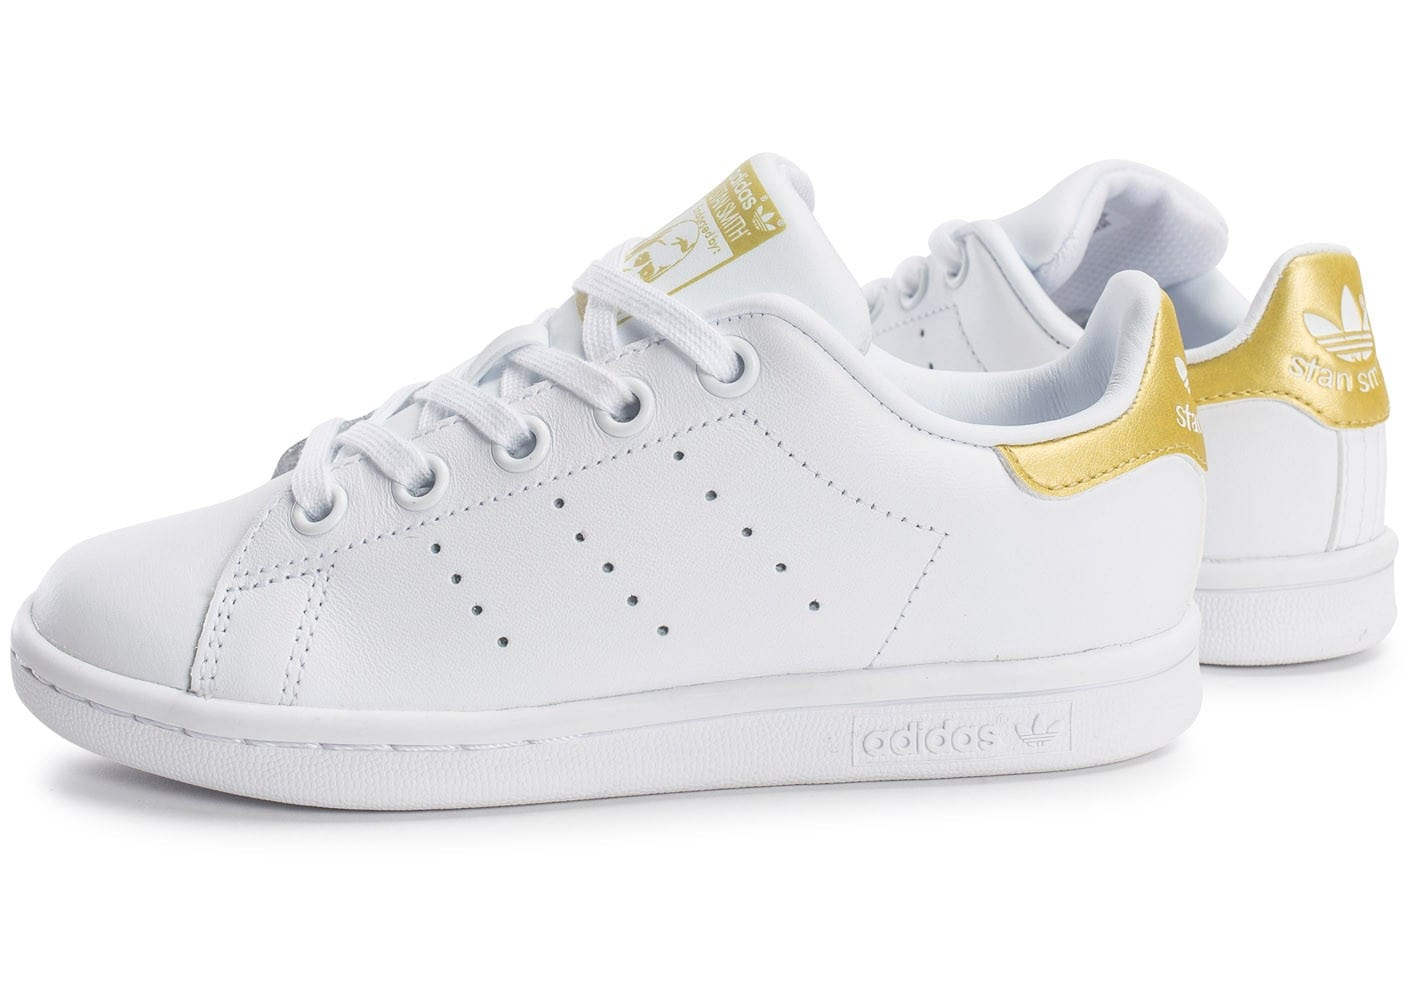 adidas stan smith enfant blanche et or chaussures adidas chausport. Black Bedroom Furniture Sets. Home Design Ideas